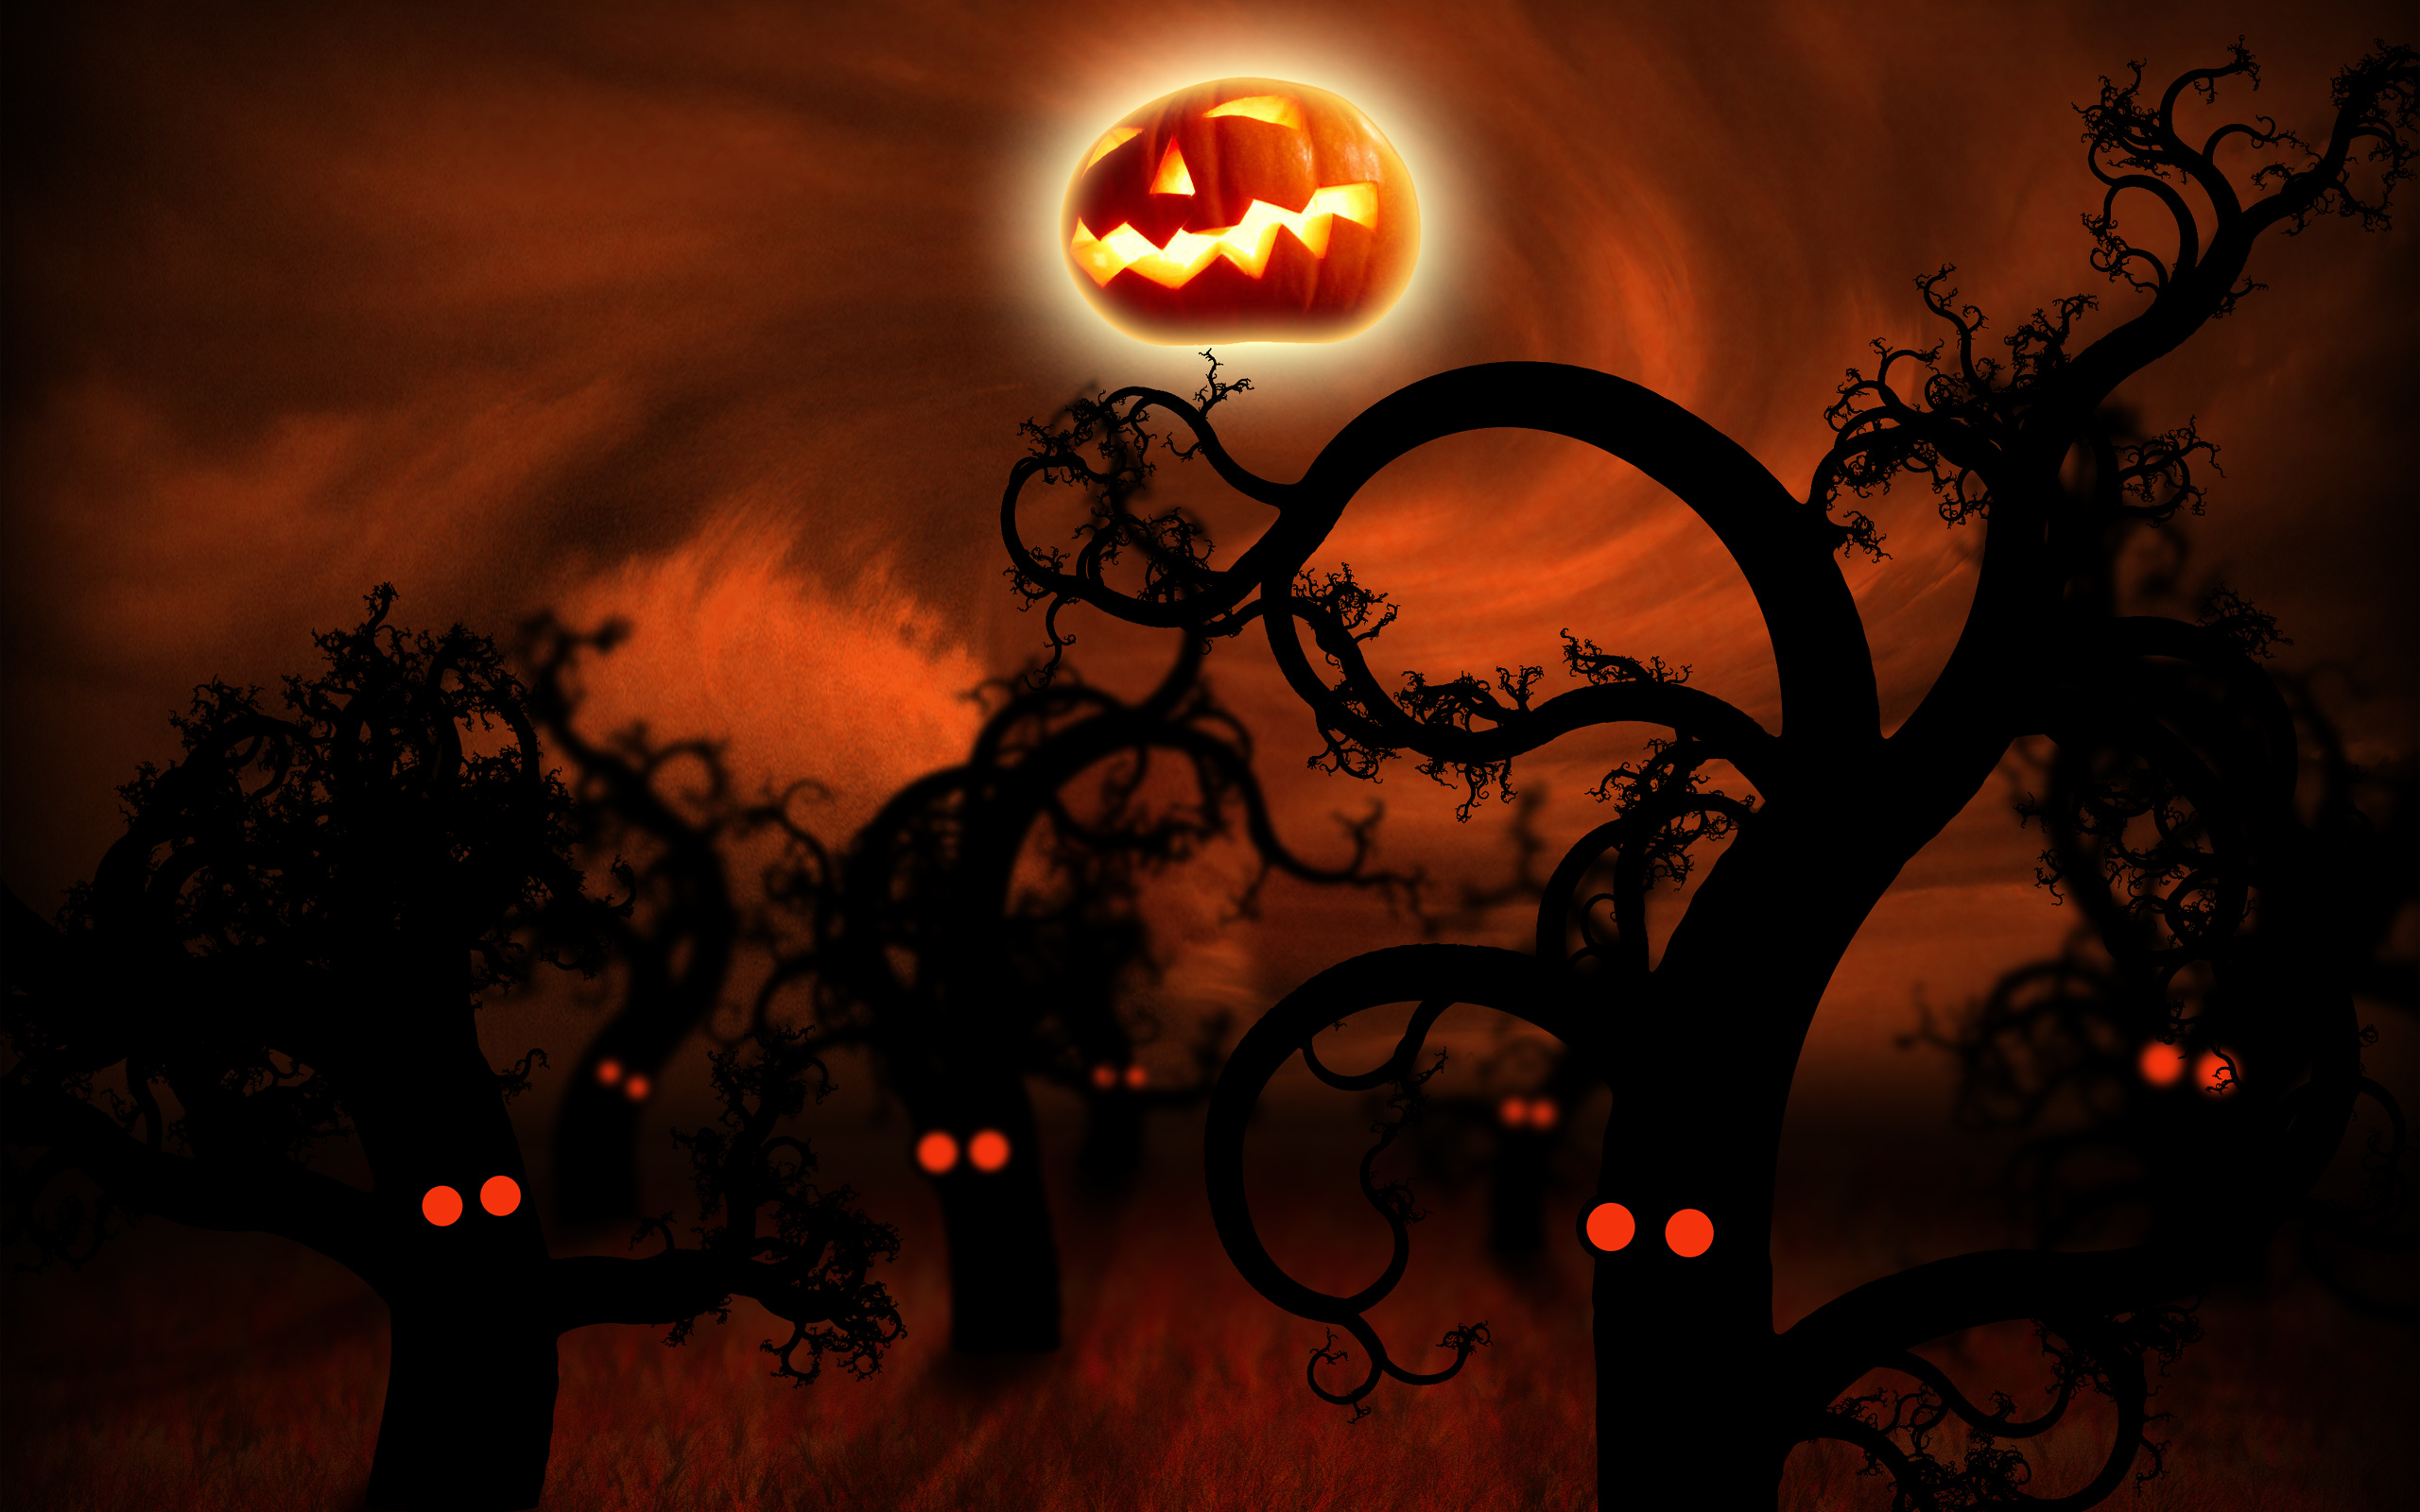 Free Halloween Animated Desktop Wallpaper - WallpaperSafari